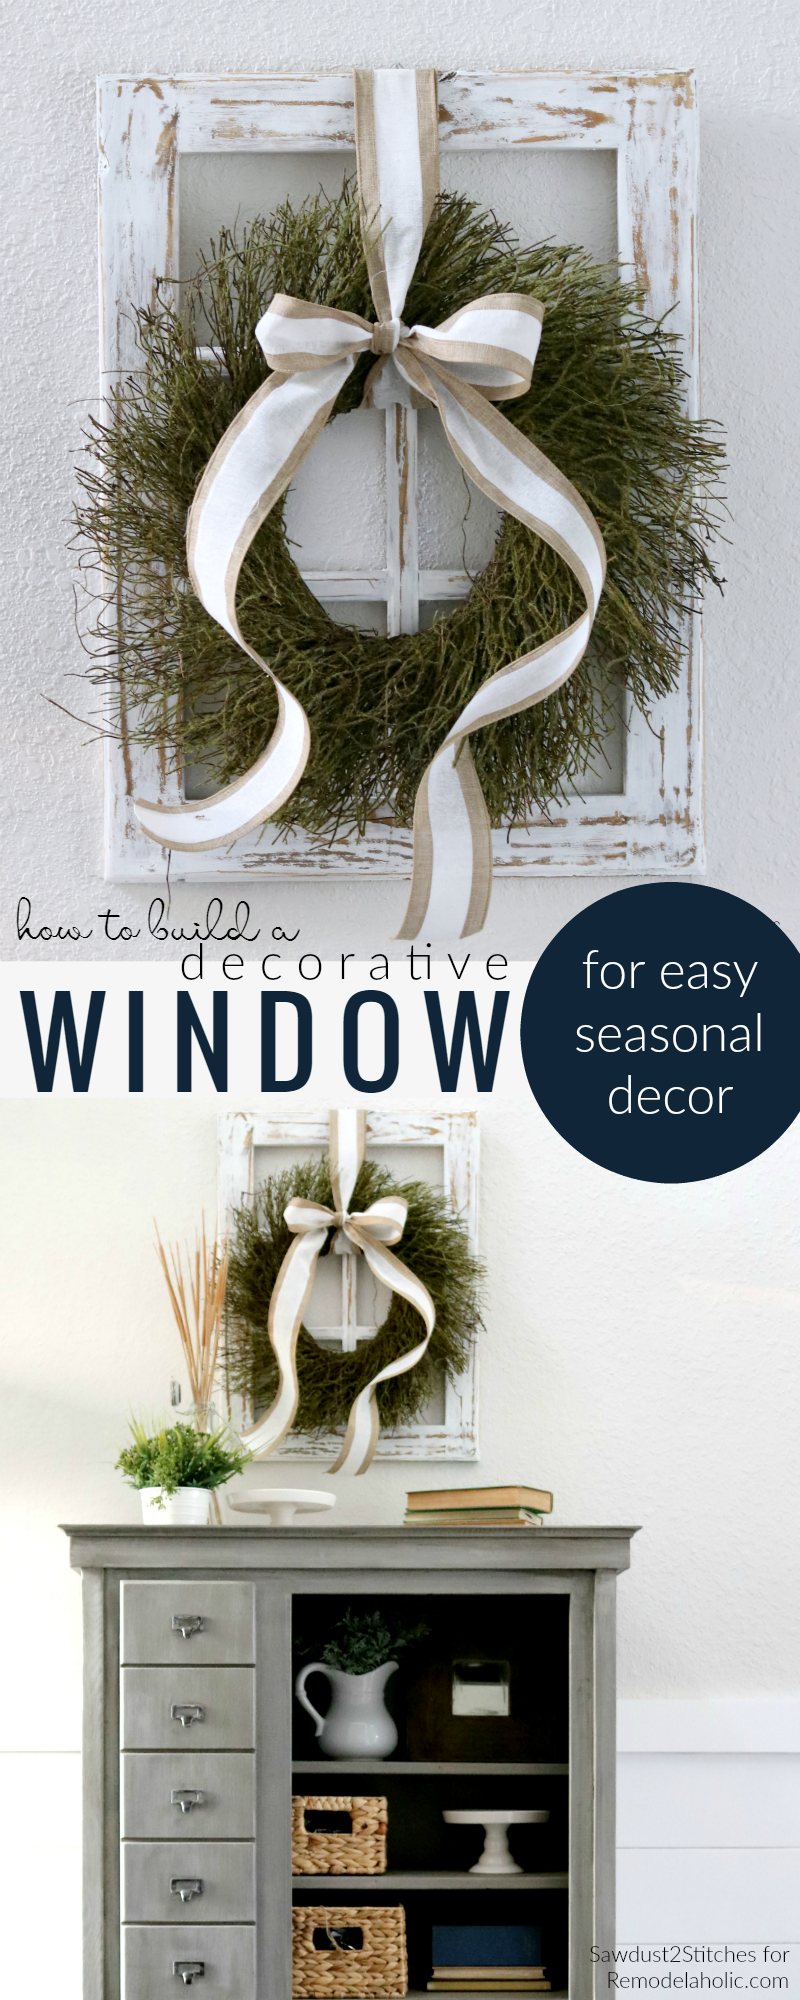 How To Build A Diy Decorative Window Frame From Just One Board For Eason Seasonal And Holiday Decor Remodelaholic